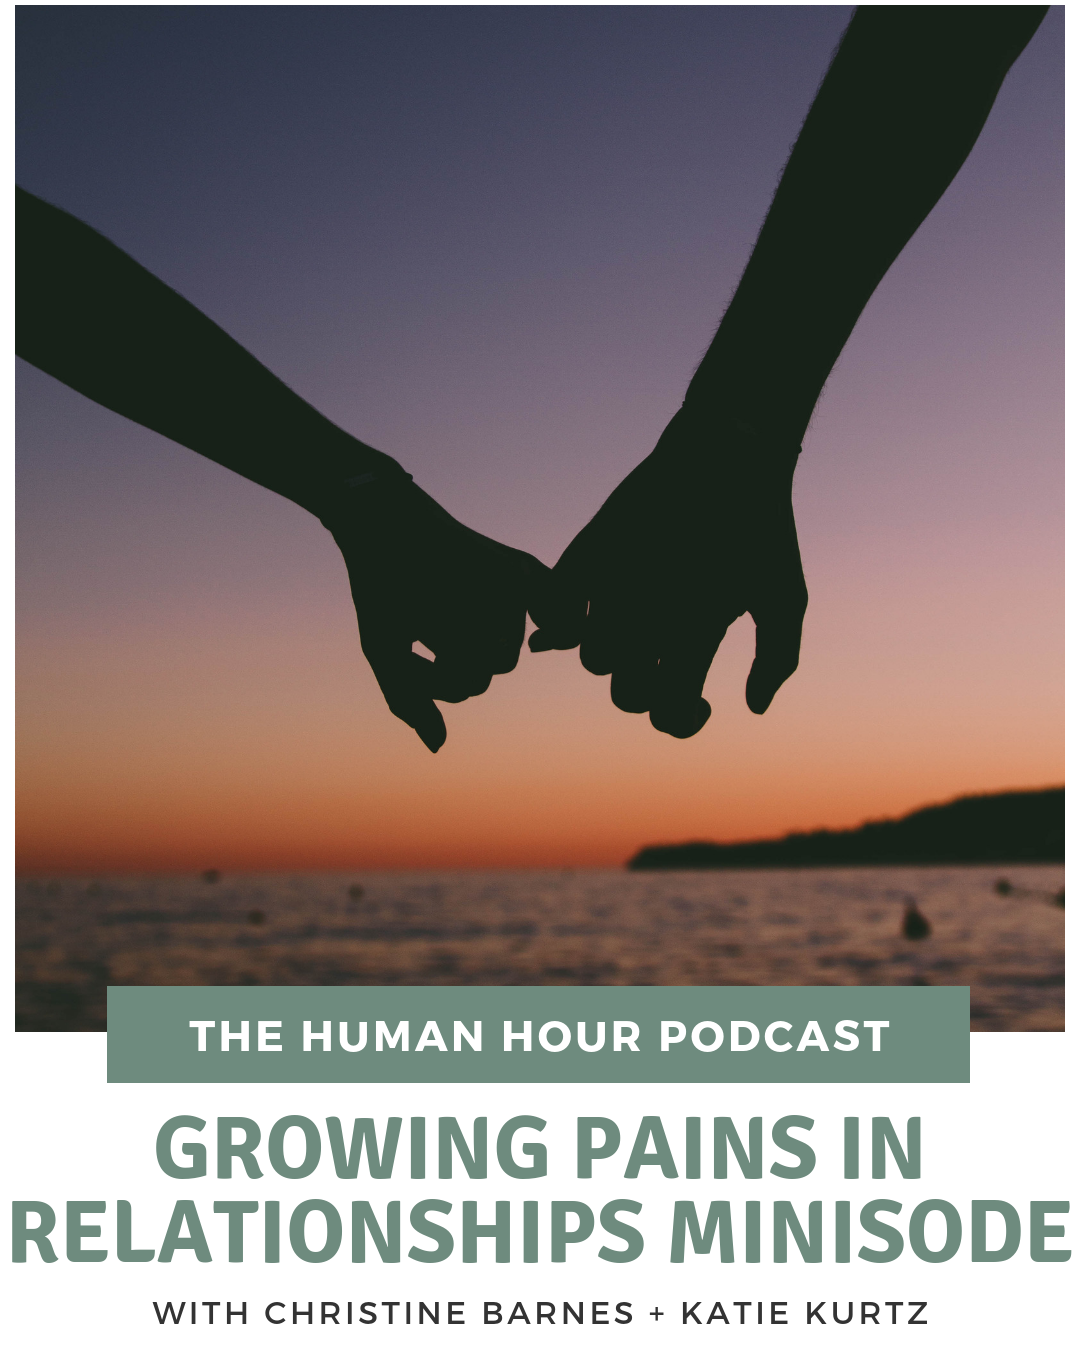 S2 E6: Growing Pains in Relationships Minisode with Christine Barnes + Katie Kurtz